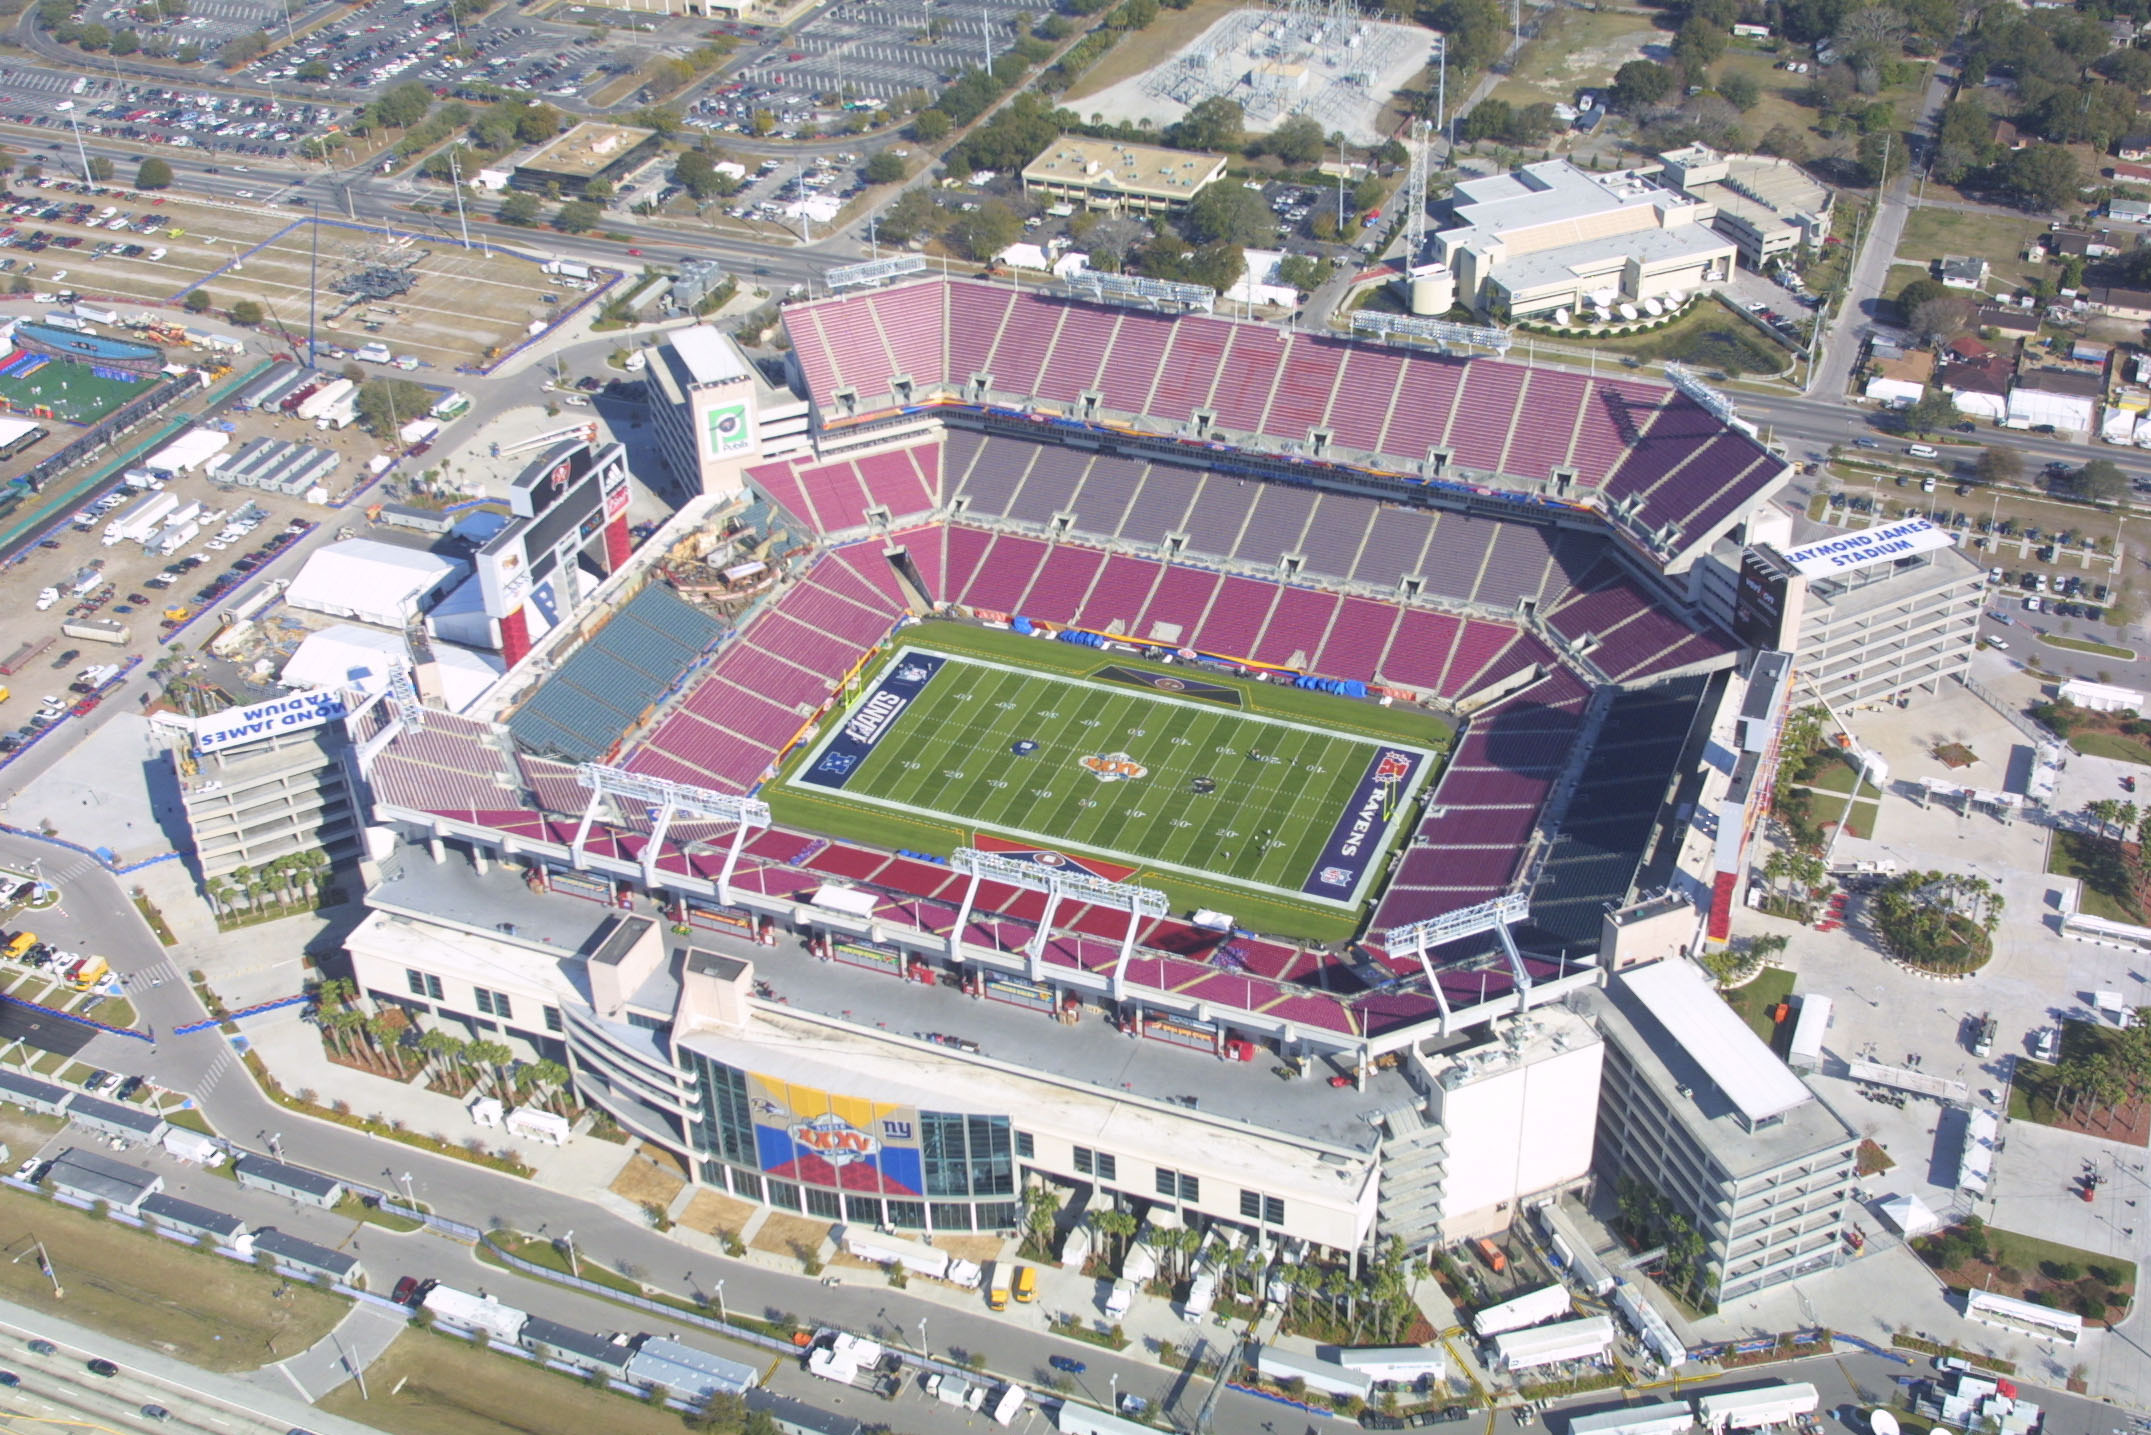 Tampa Bay Buccaneers Stadium Scoreboard Catches Fire Bleacher Report Latest News Videos And Highlights